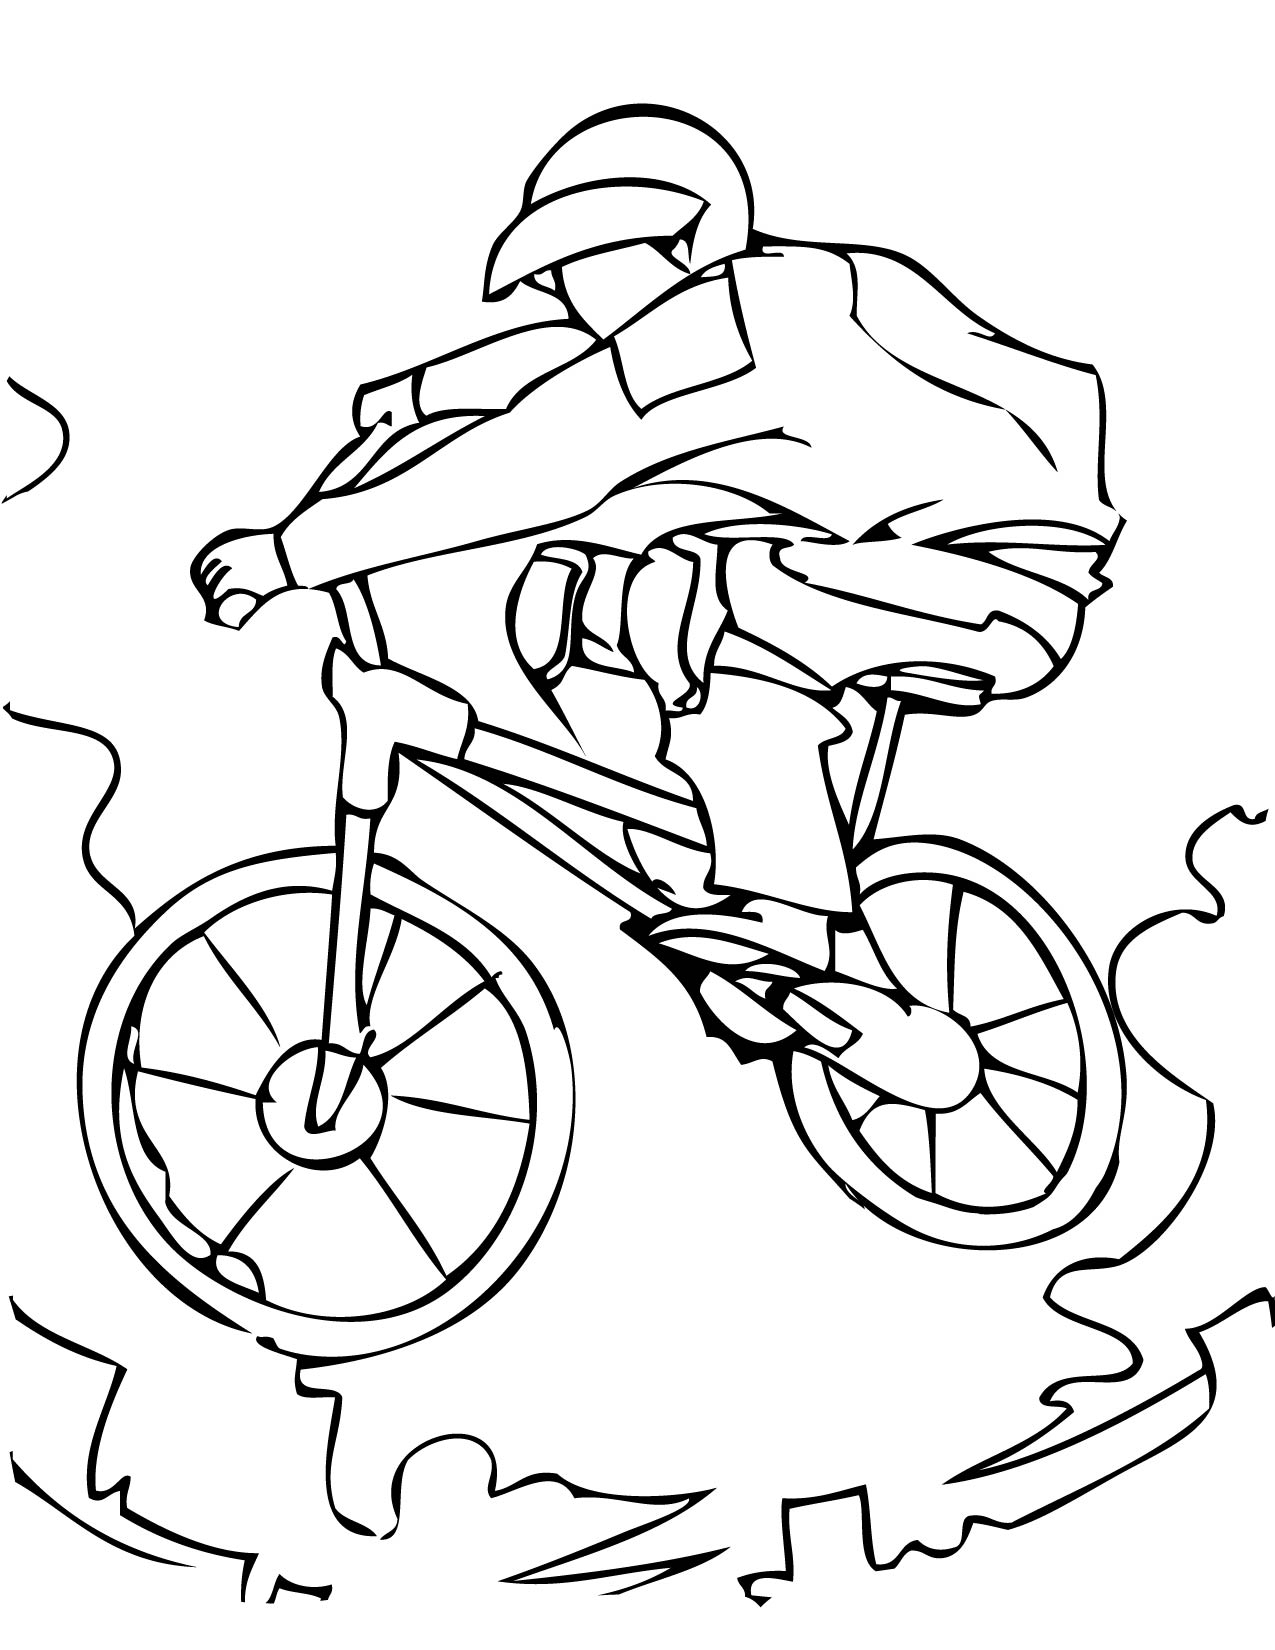 coloring pages of bmx - photo#32